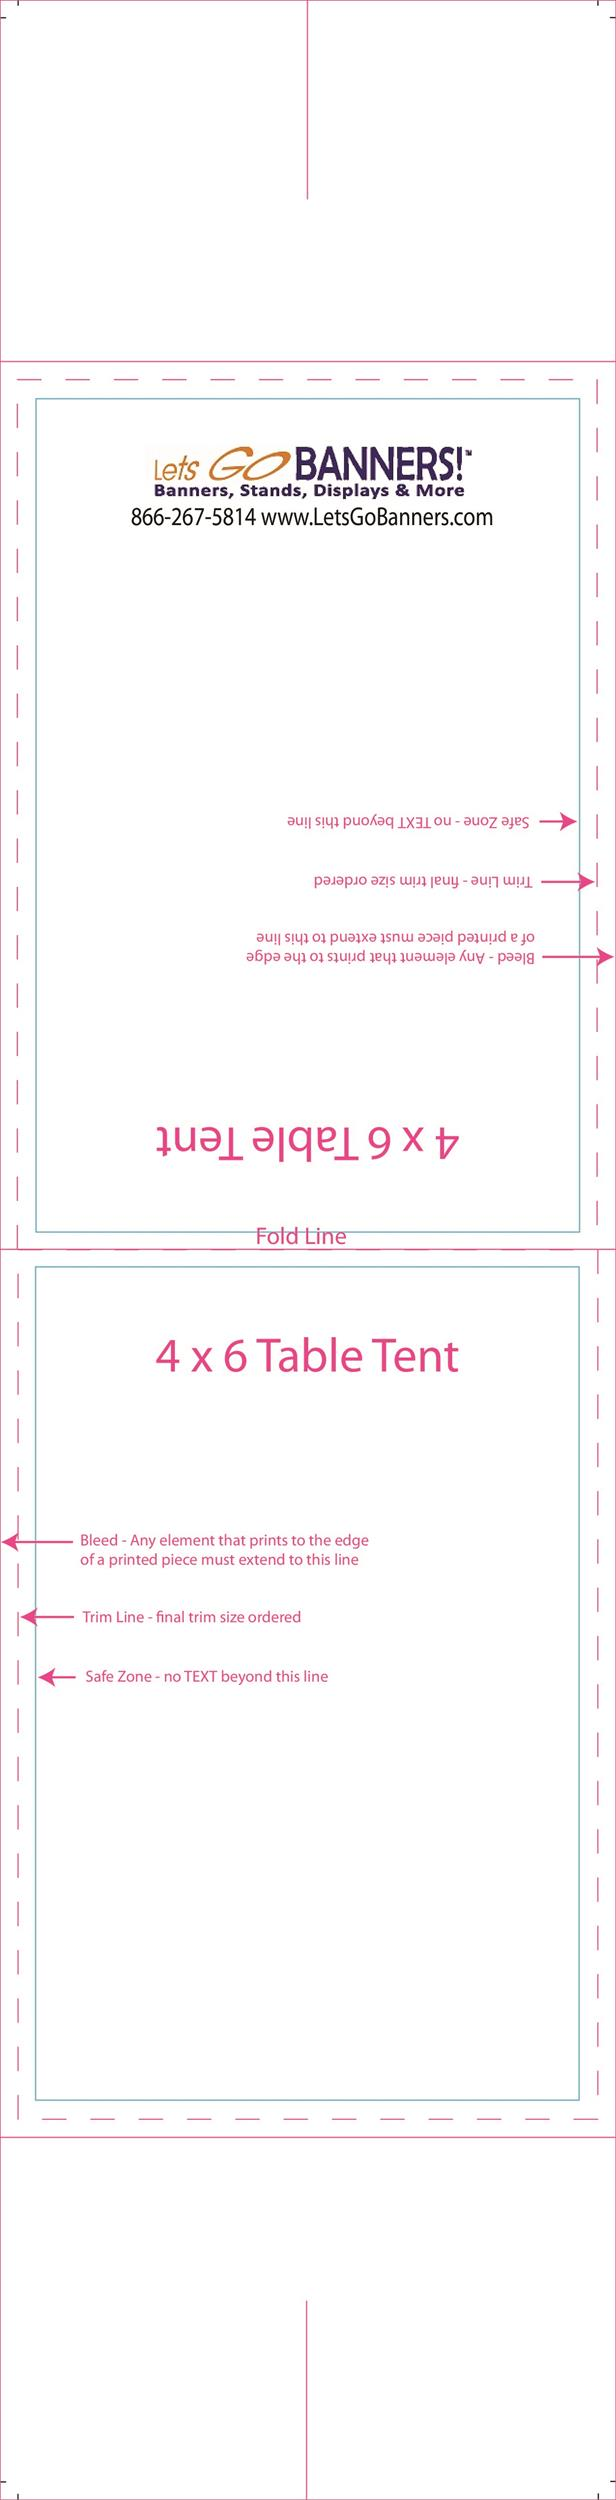 Printable table tent template 11  sc 1 st  Template Lab & 16 Printable Table Tent Templates and Cards - Template Lab